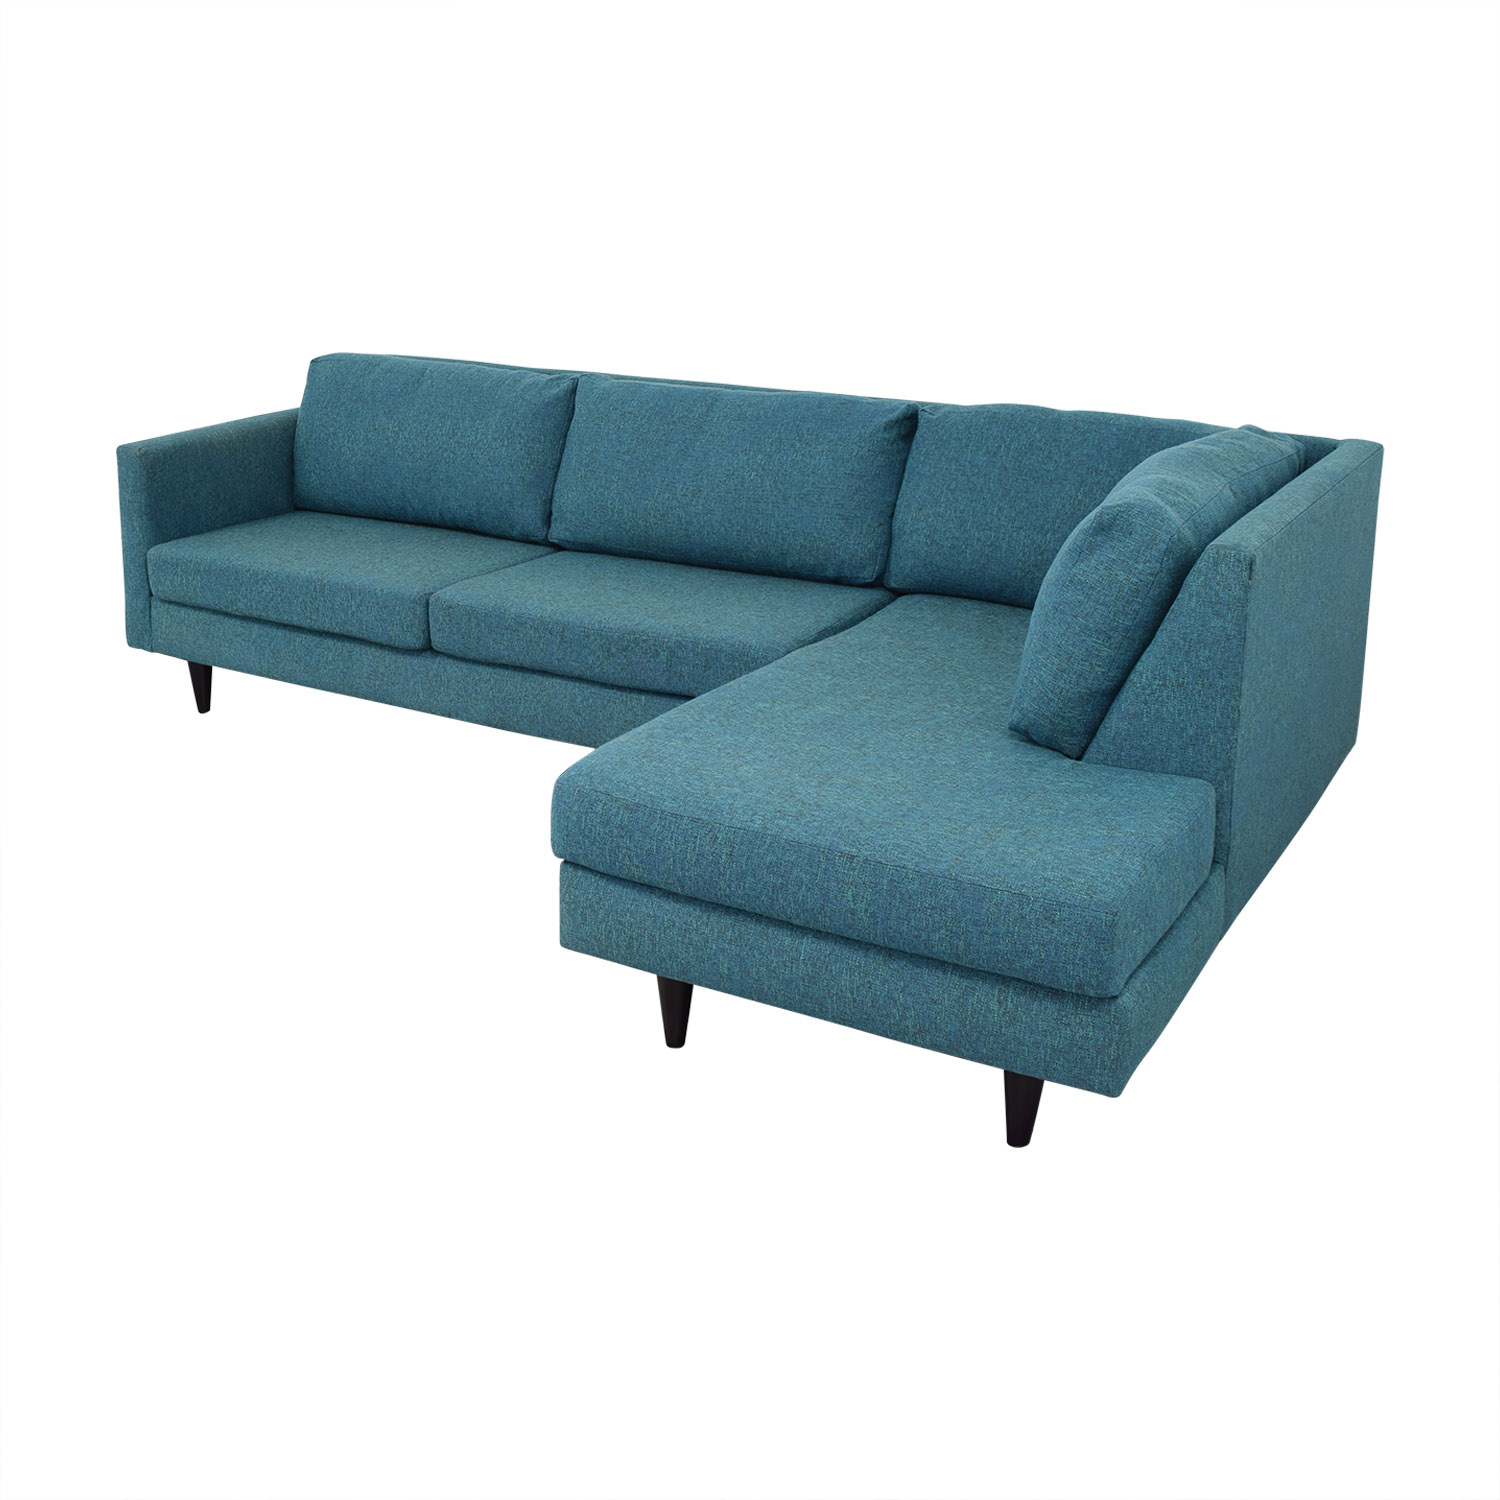 Apt2B Virgil Sectional Sofa / Sectionals